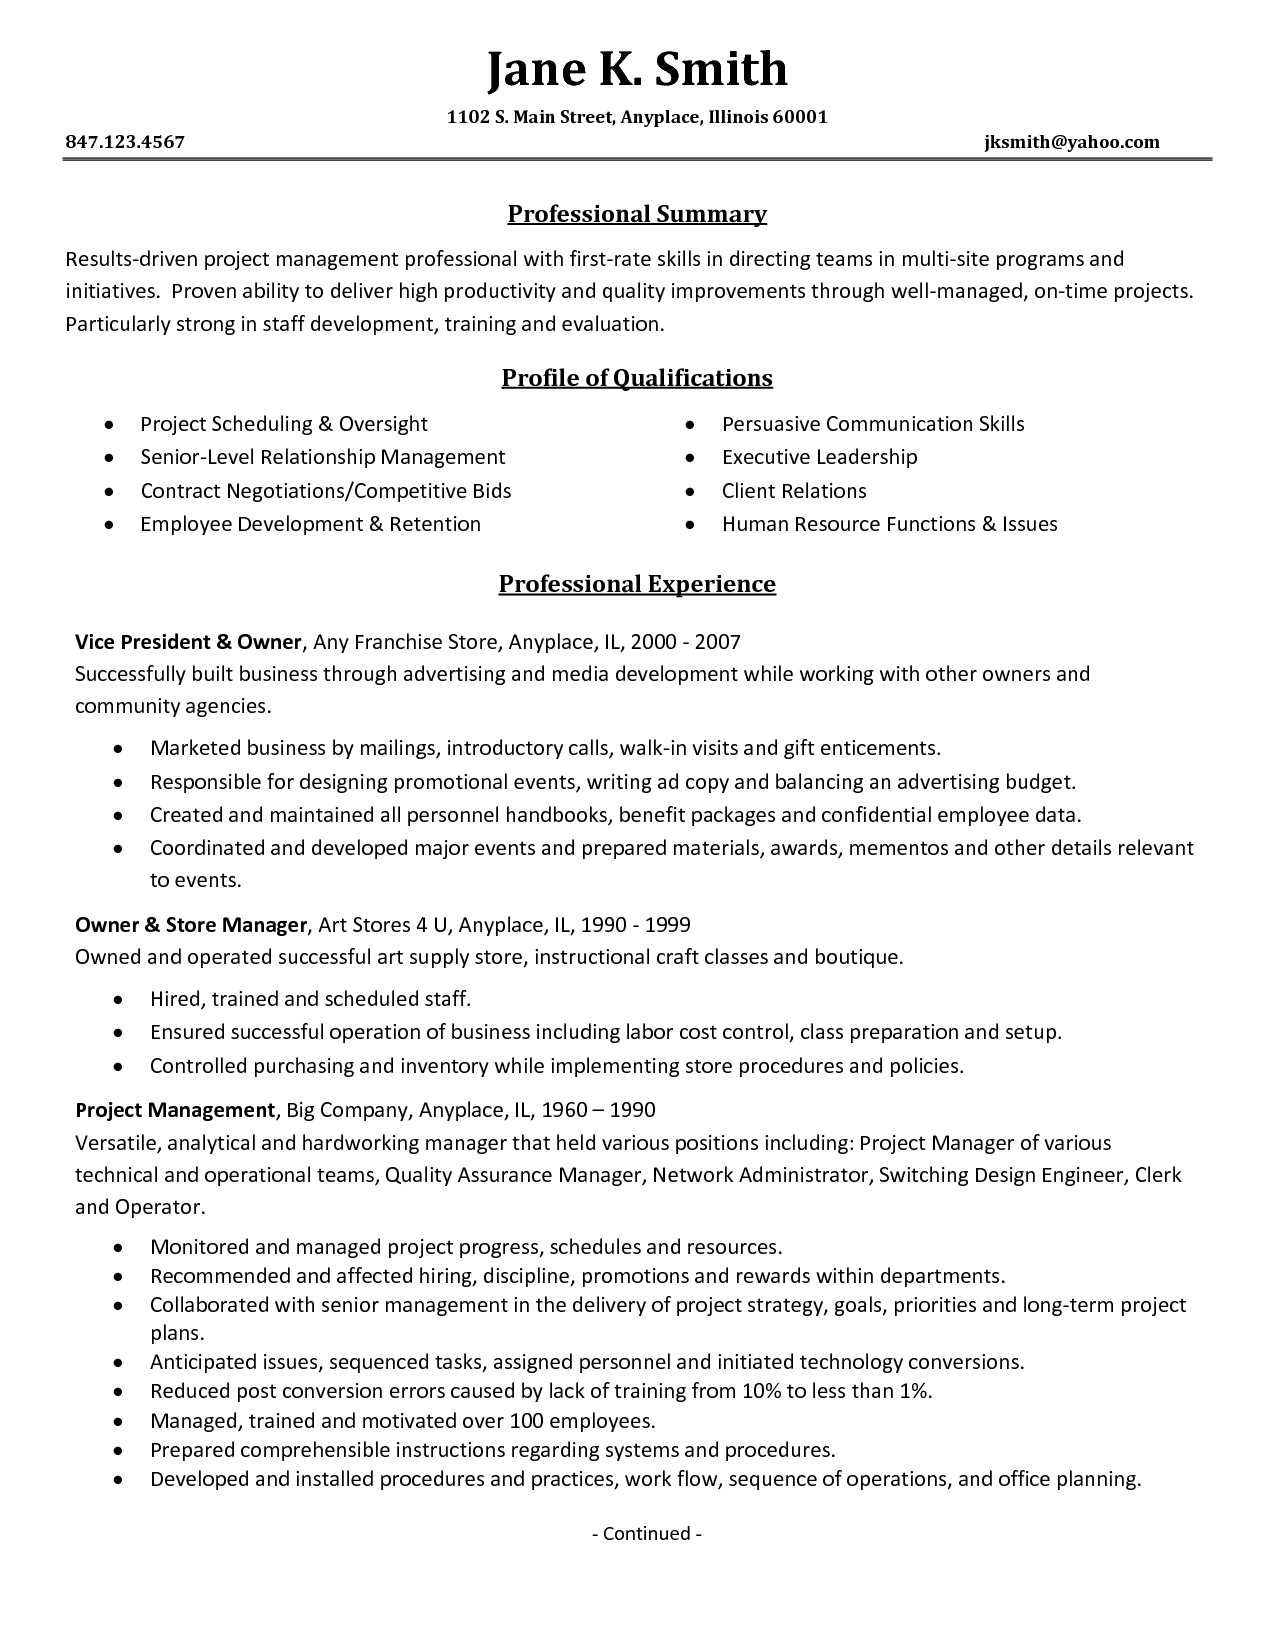 Business Consultant Job Description Resume | Sample Resume Center ...